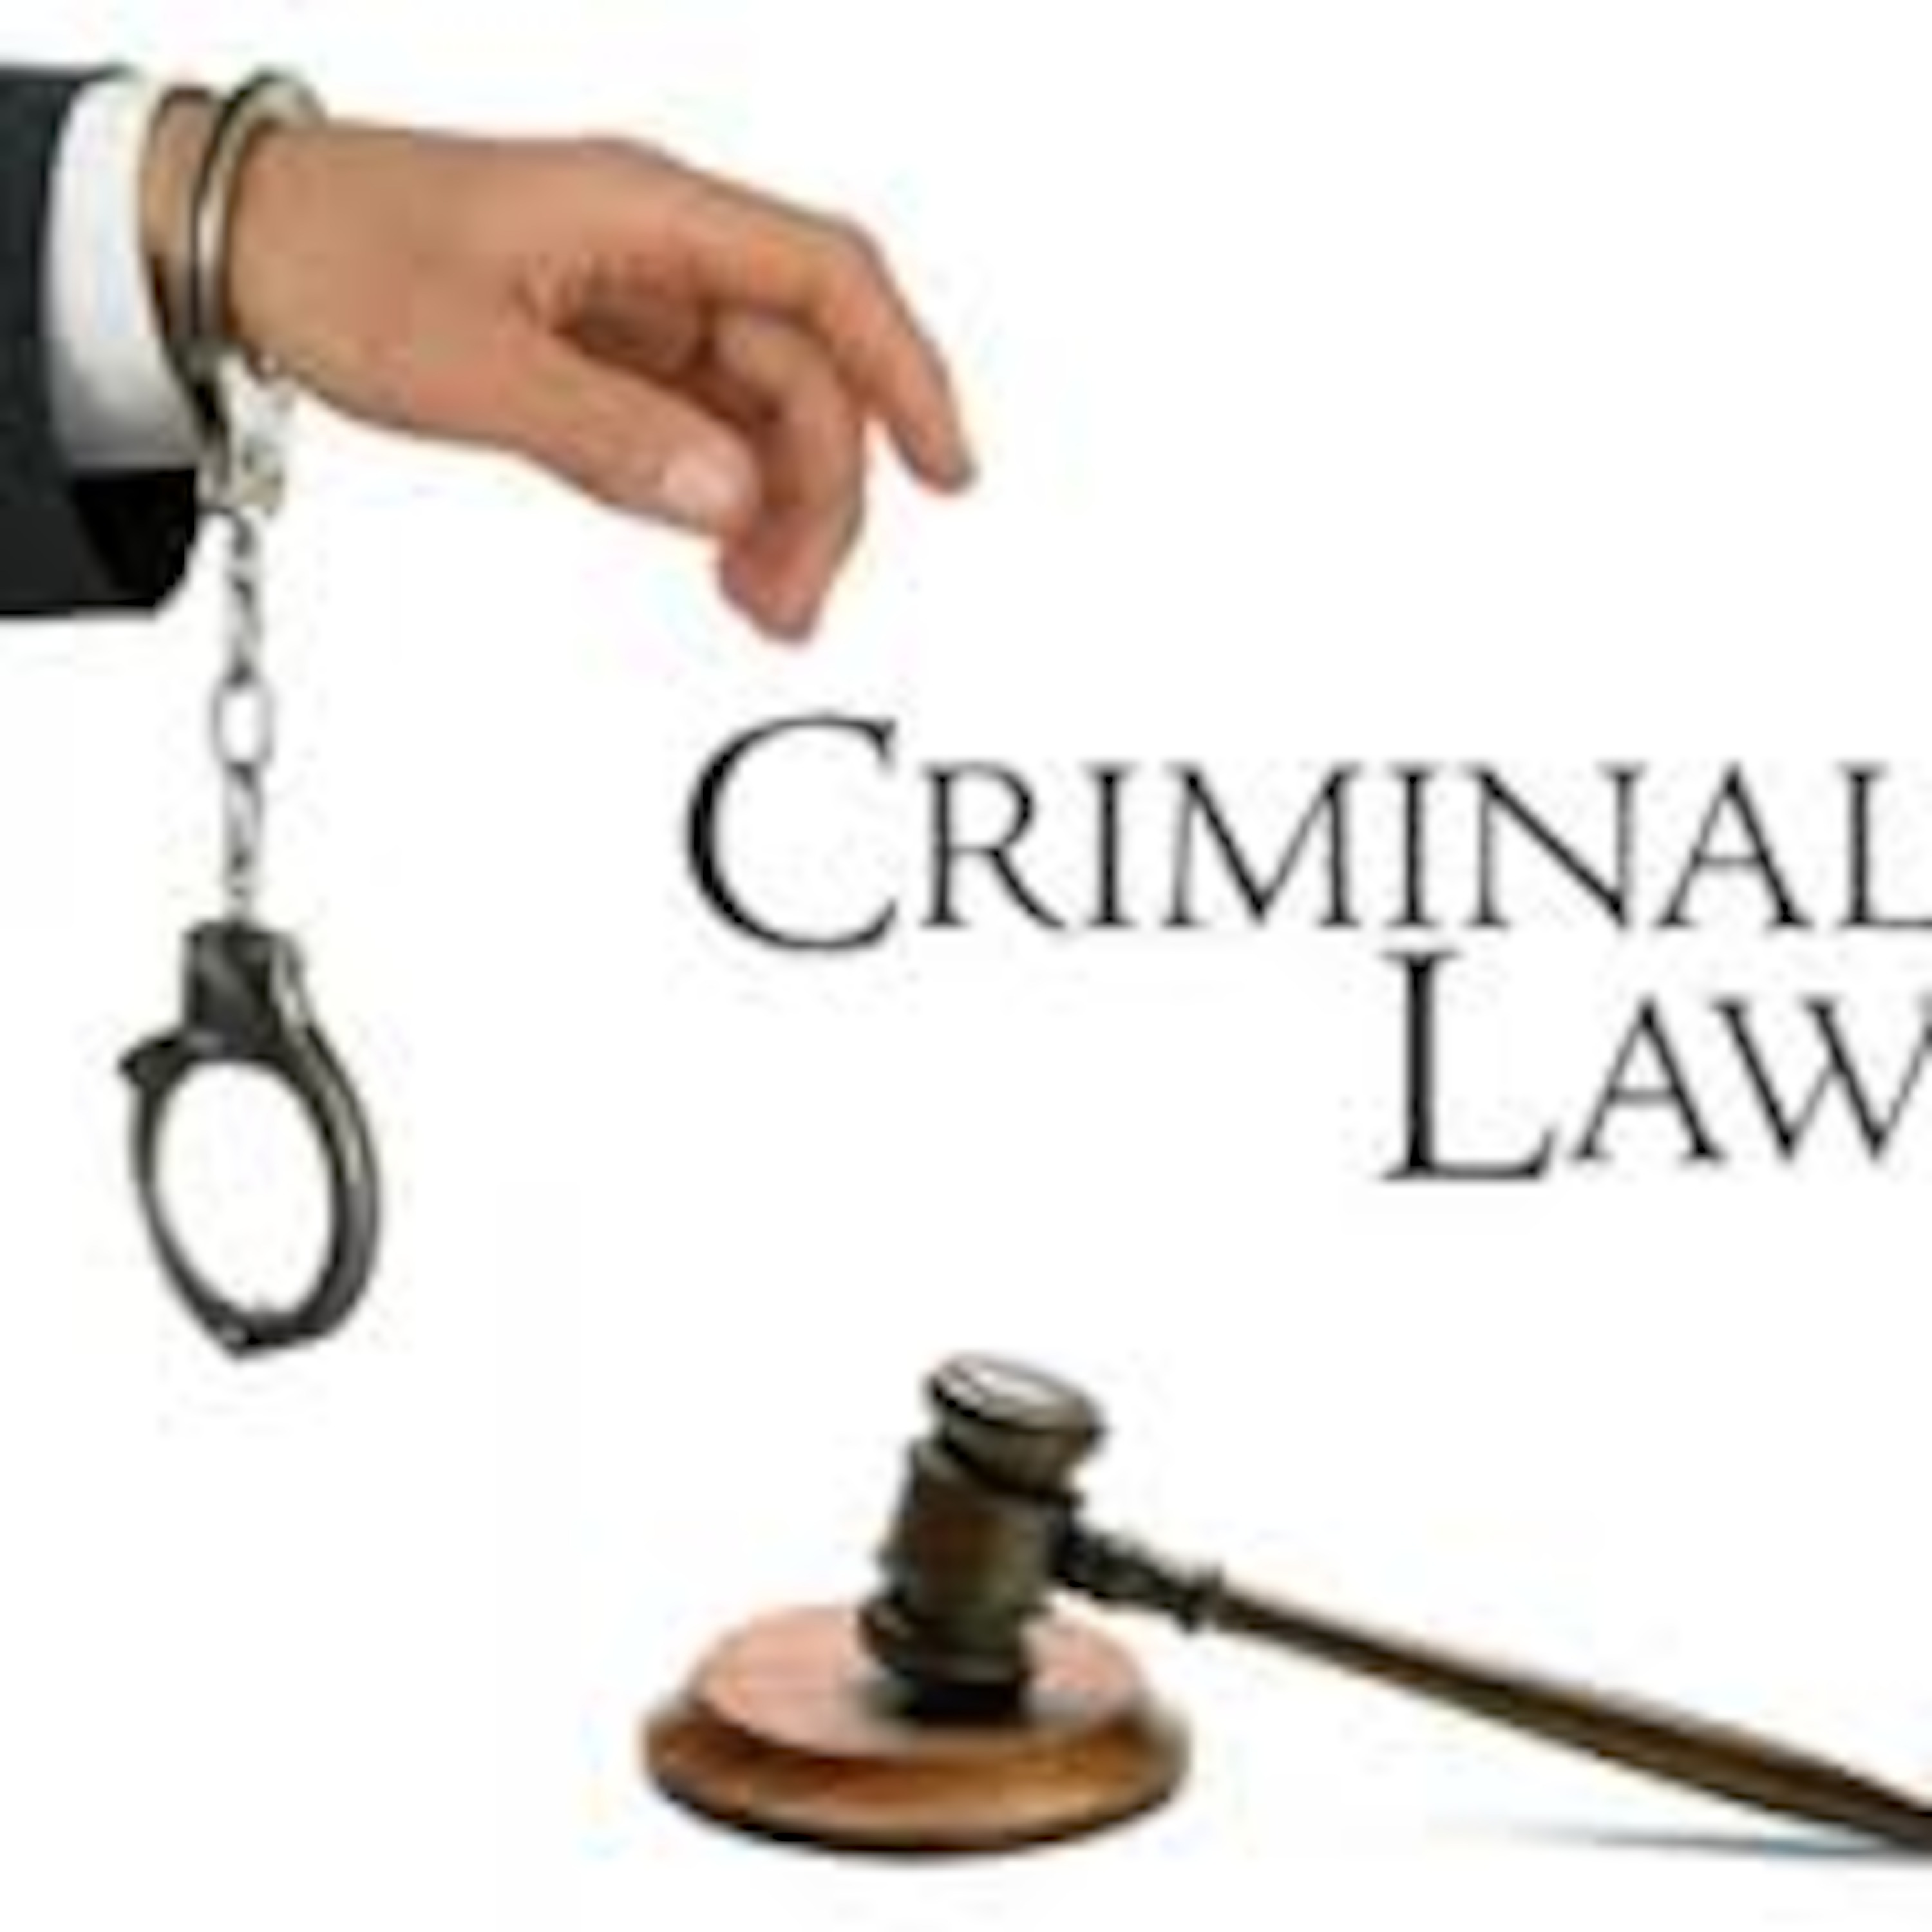 Episode 160 If it don't fit u must acquit, Criminal Law and The Criminal Process